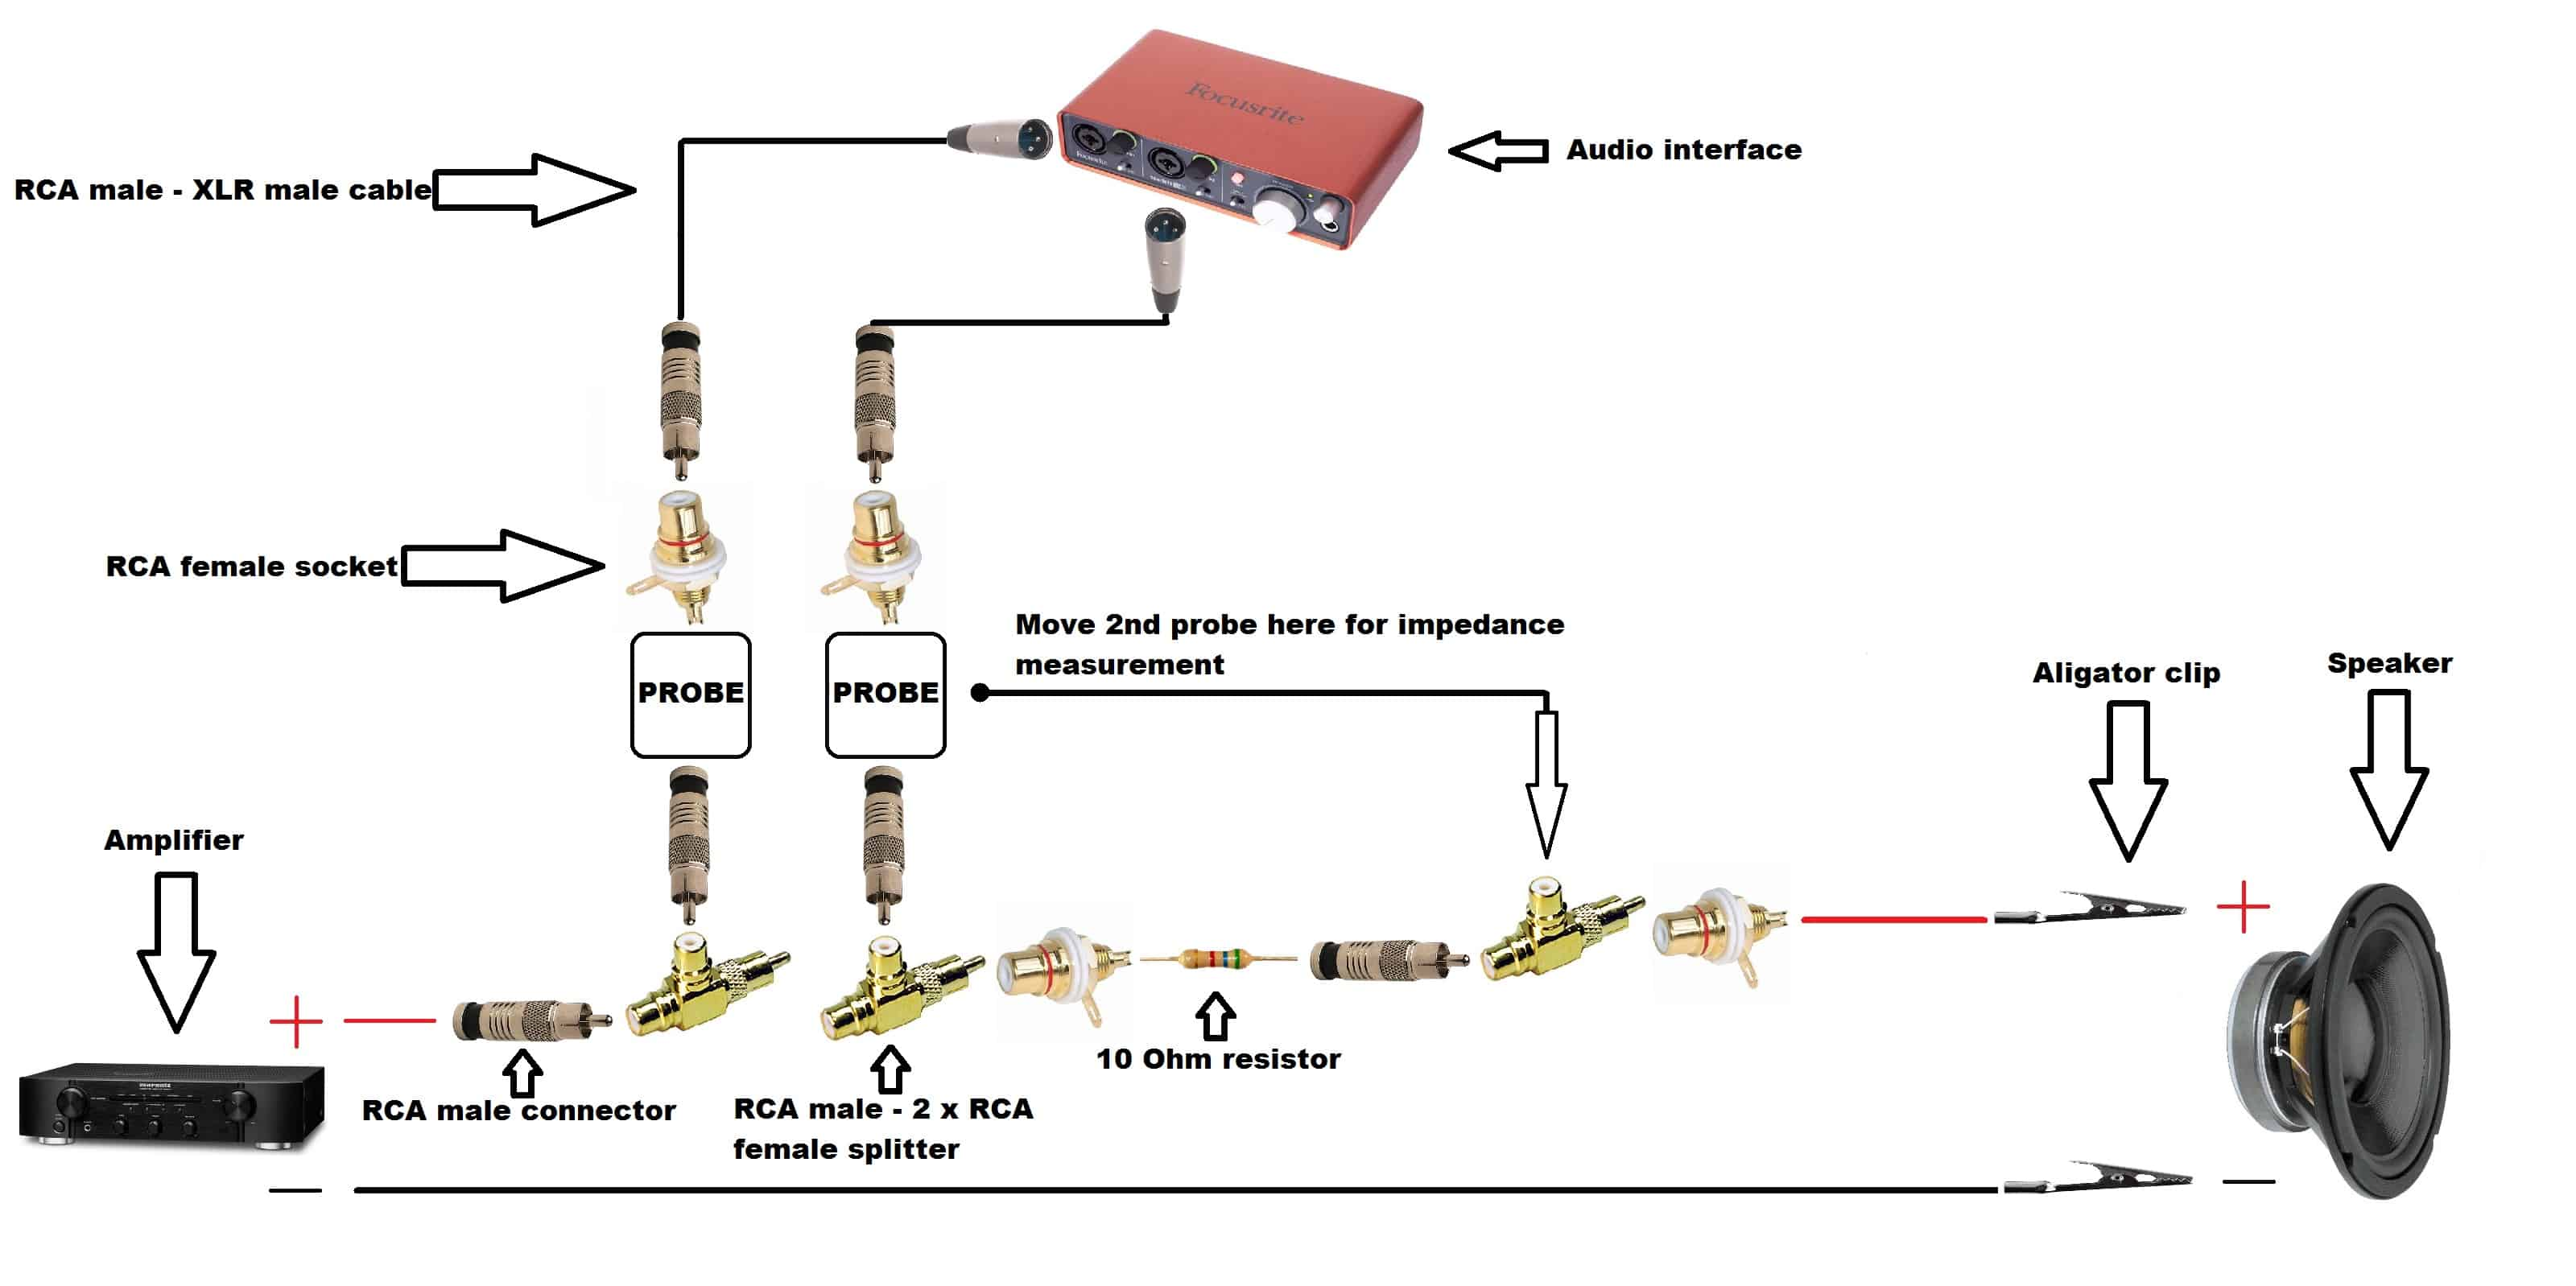 audio connector wiring diagram 1999 ford ranger soundeasy probe and measurement jig  build guide